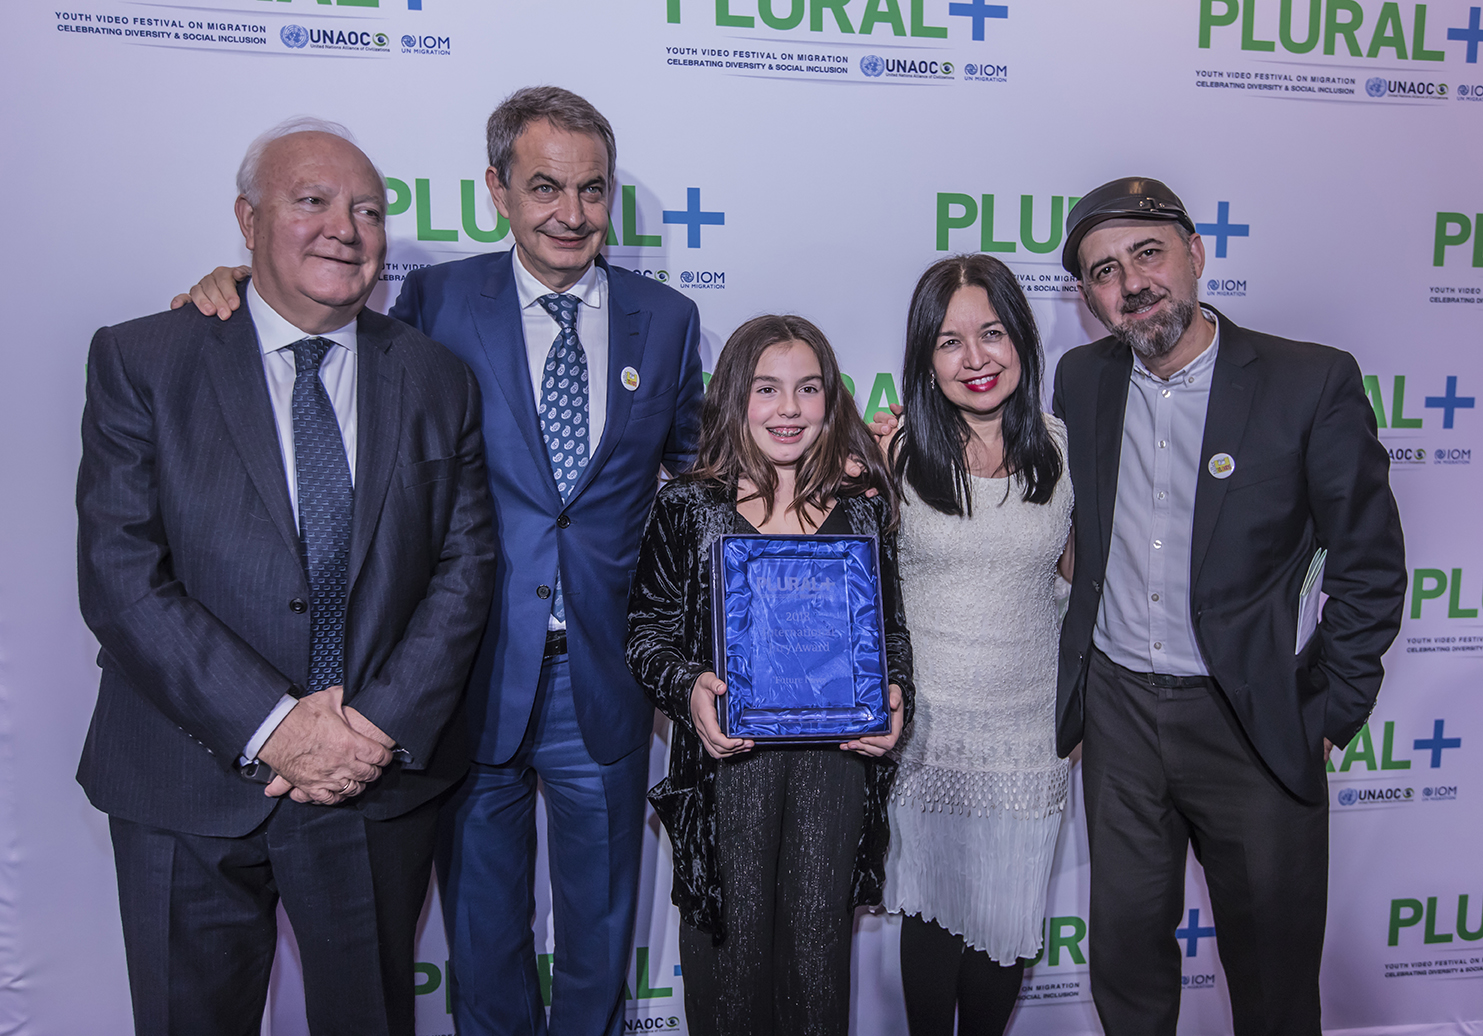 UNAOC/IOM PLURAL+ Youth Video Festival 2019 (Win all expense paid trip to New York)